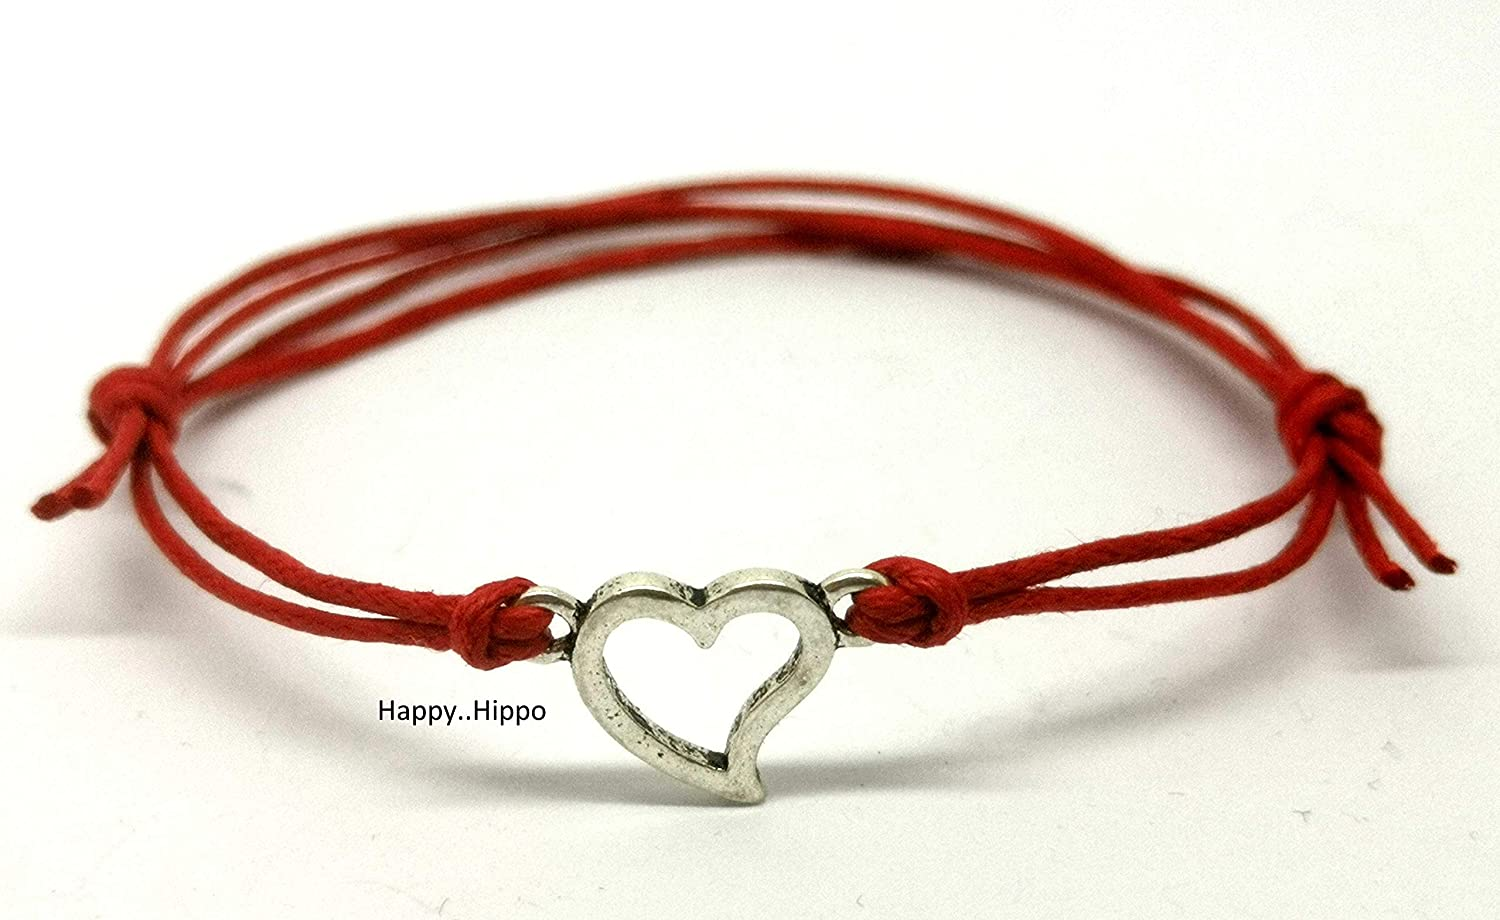 Blue Waxed Cotton Cord Friendship//Surfer Bracelet with Silver Heart Charm